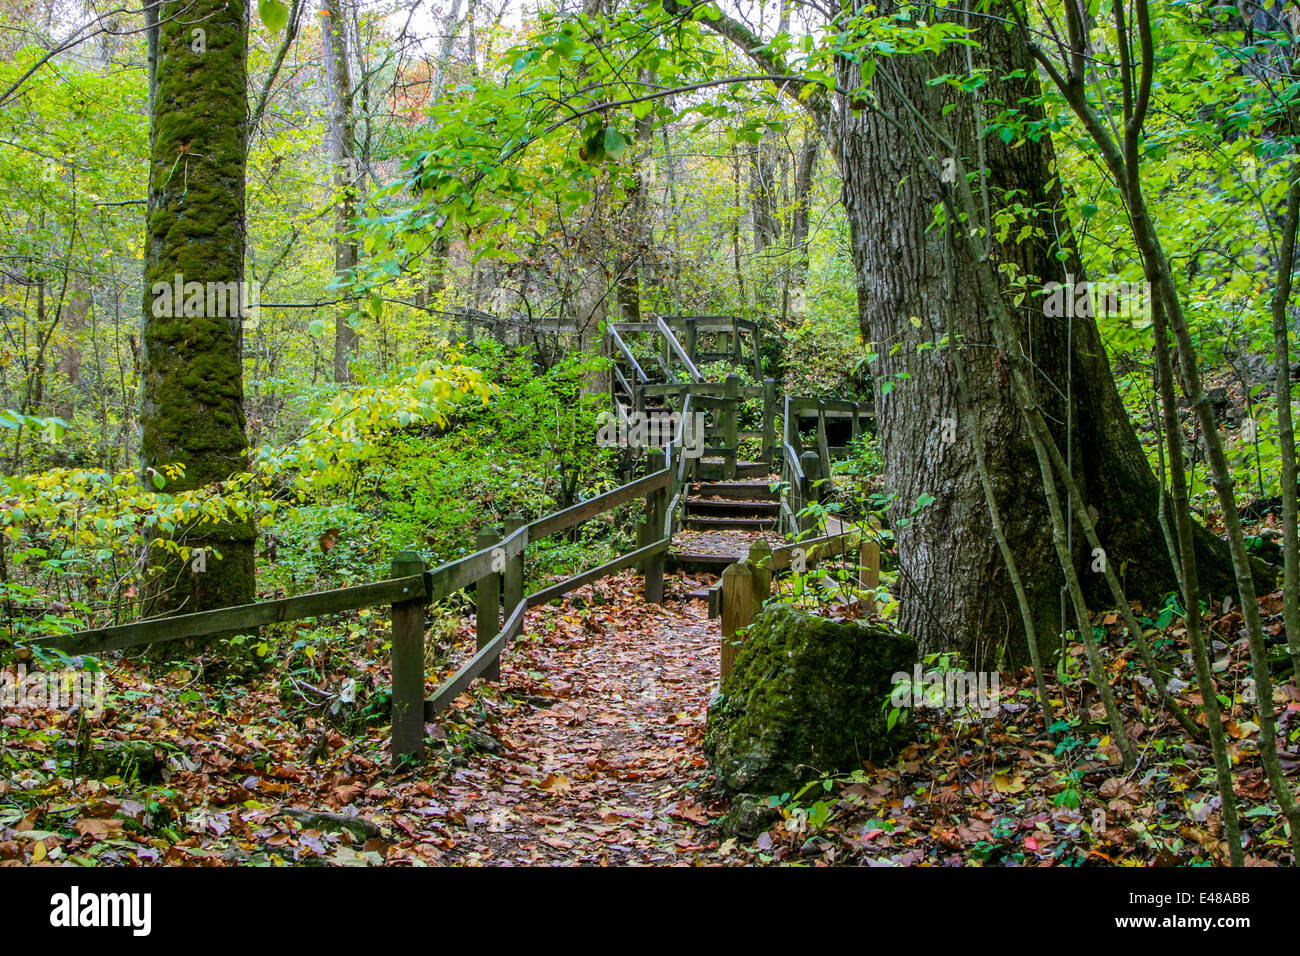 A Foot Path With Wooden Hand Rails And Steps Along The Little Miami River At Clifton Gorge, Clifton Ohio, USA Stock Photo